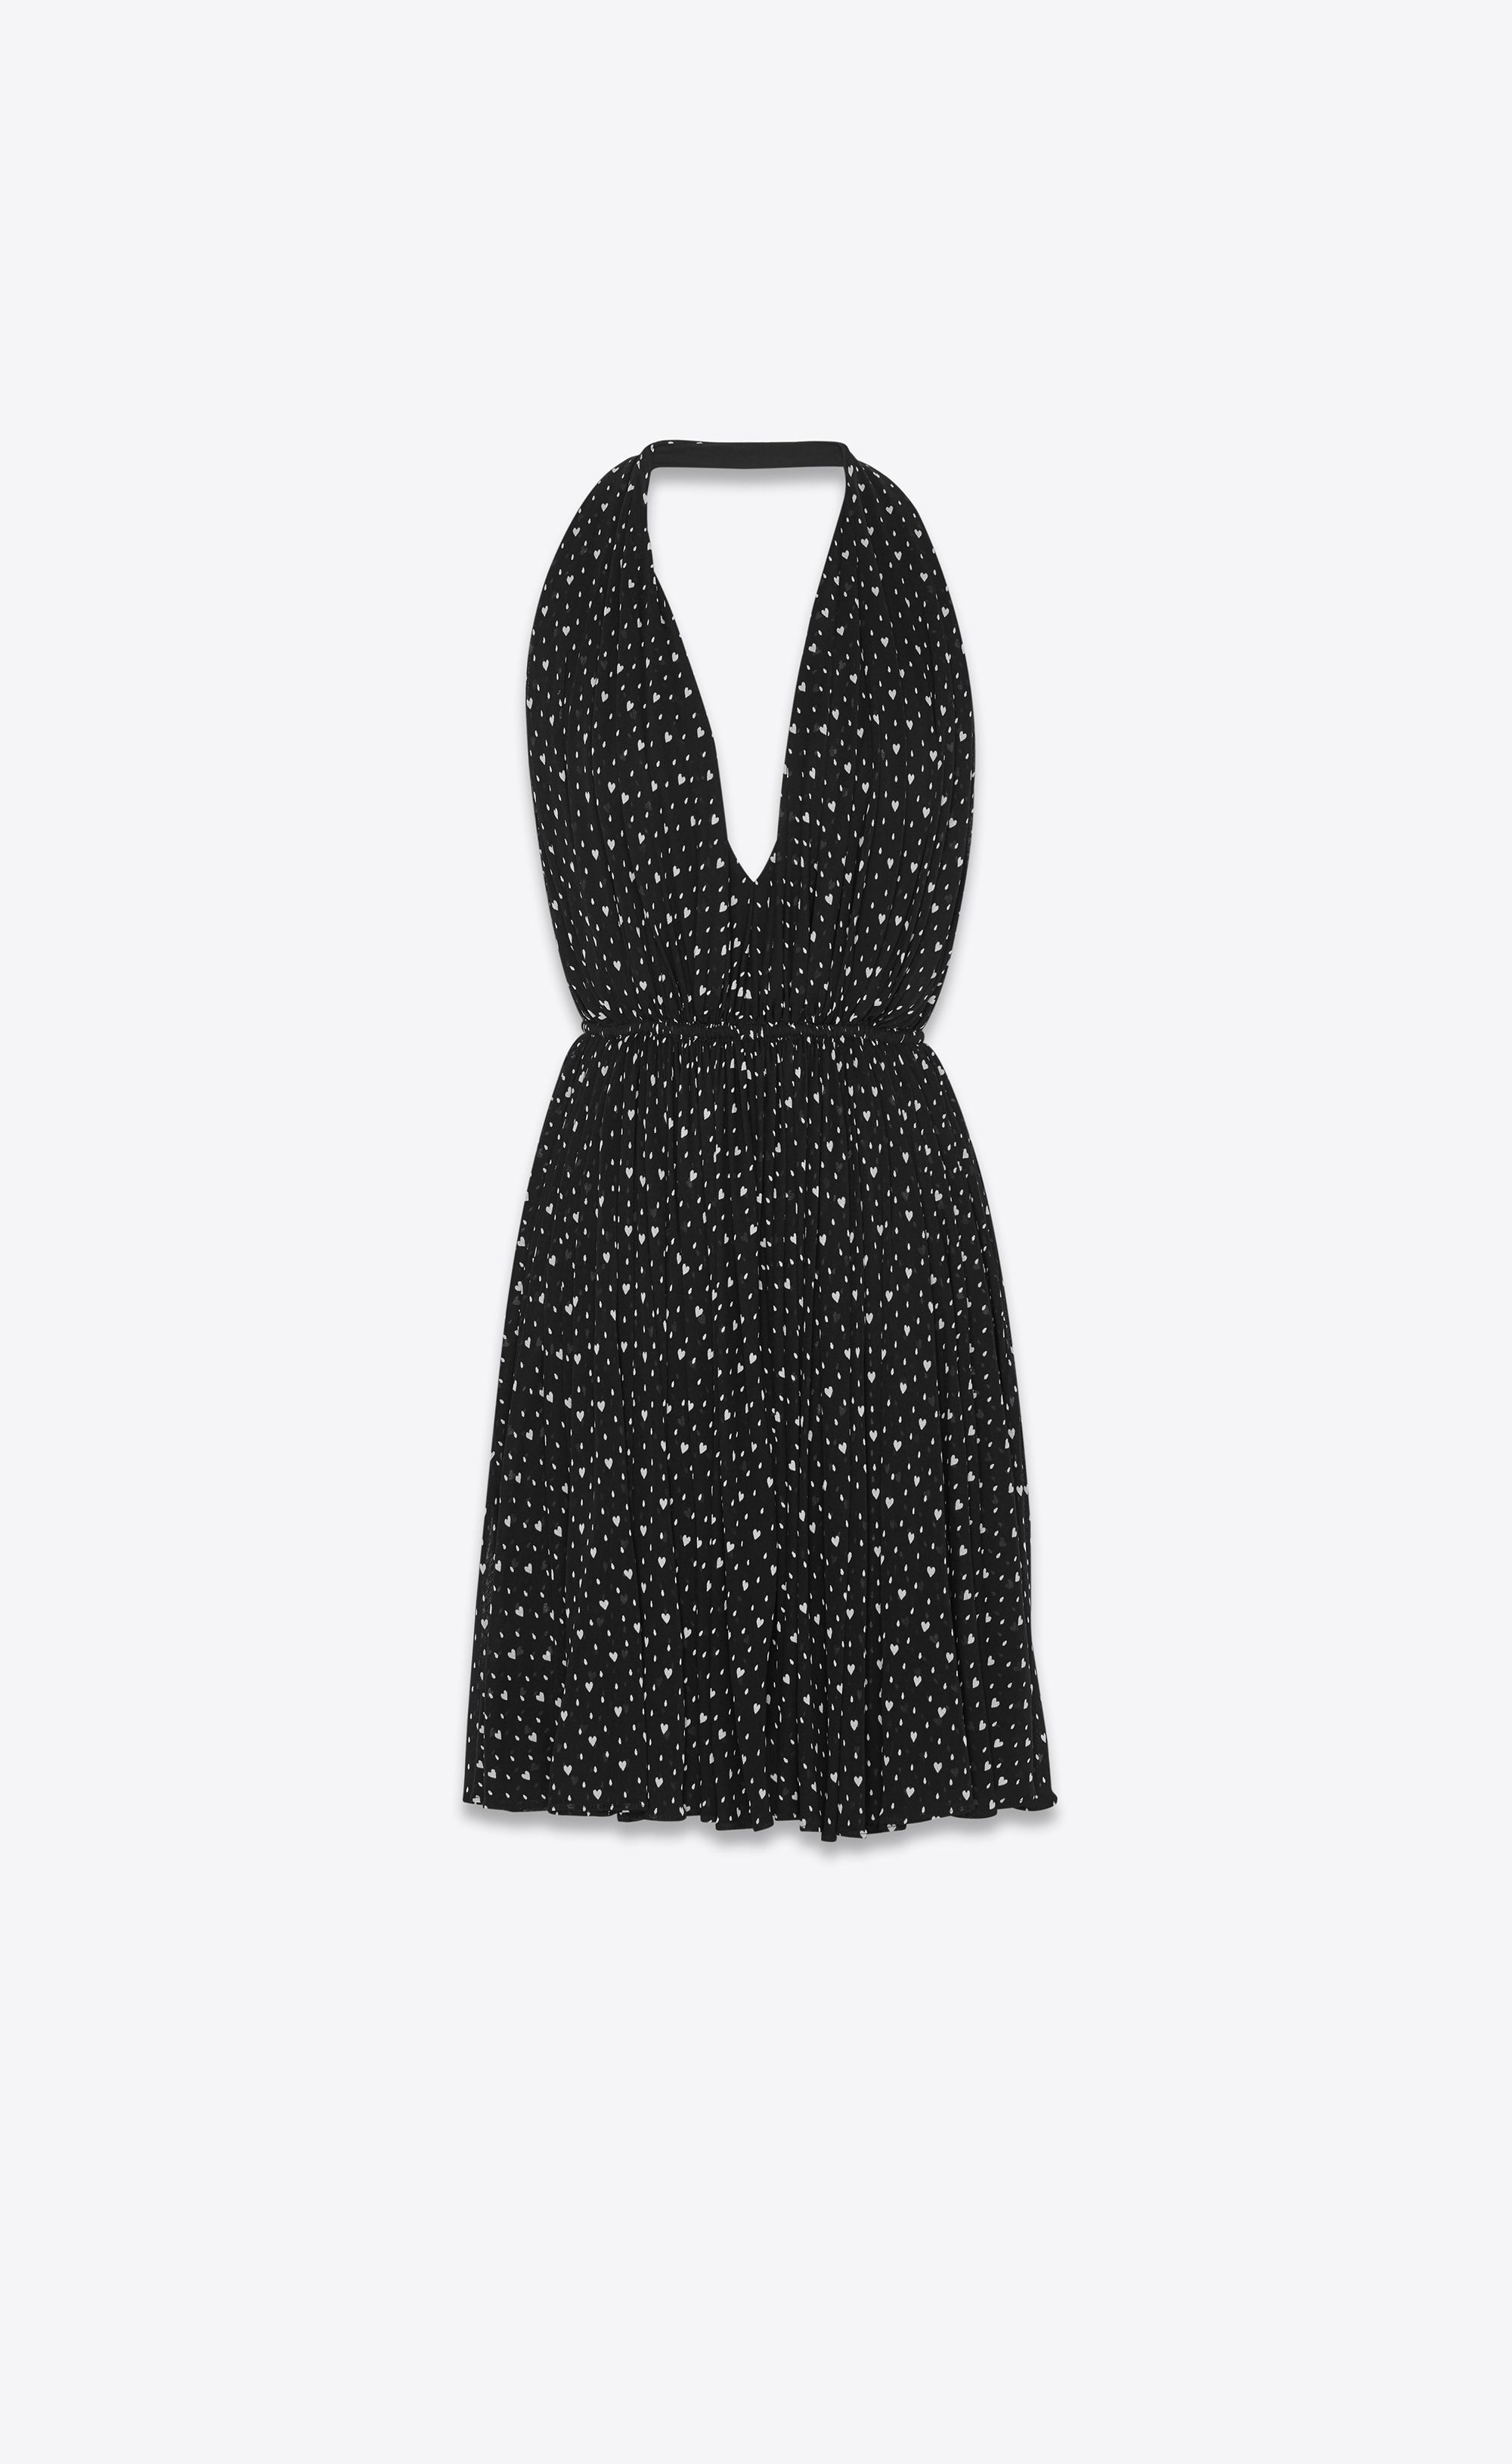 07f768de75 Saint Laurent Backless Dress In Heart Print Jersey | YSL.com ...